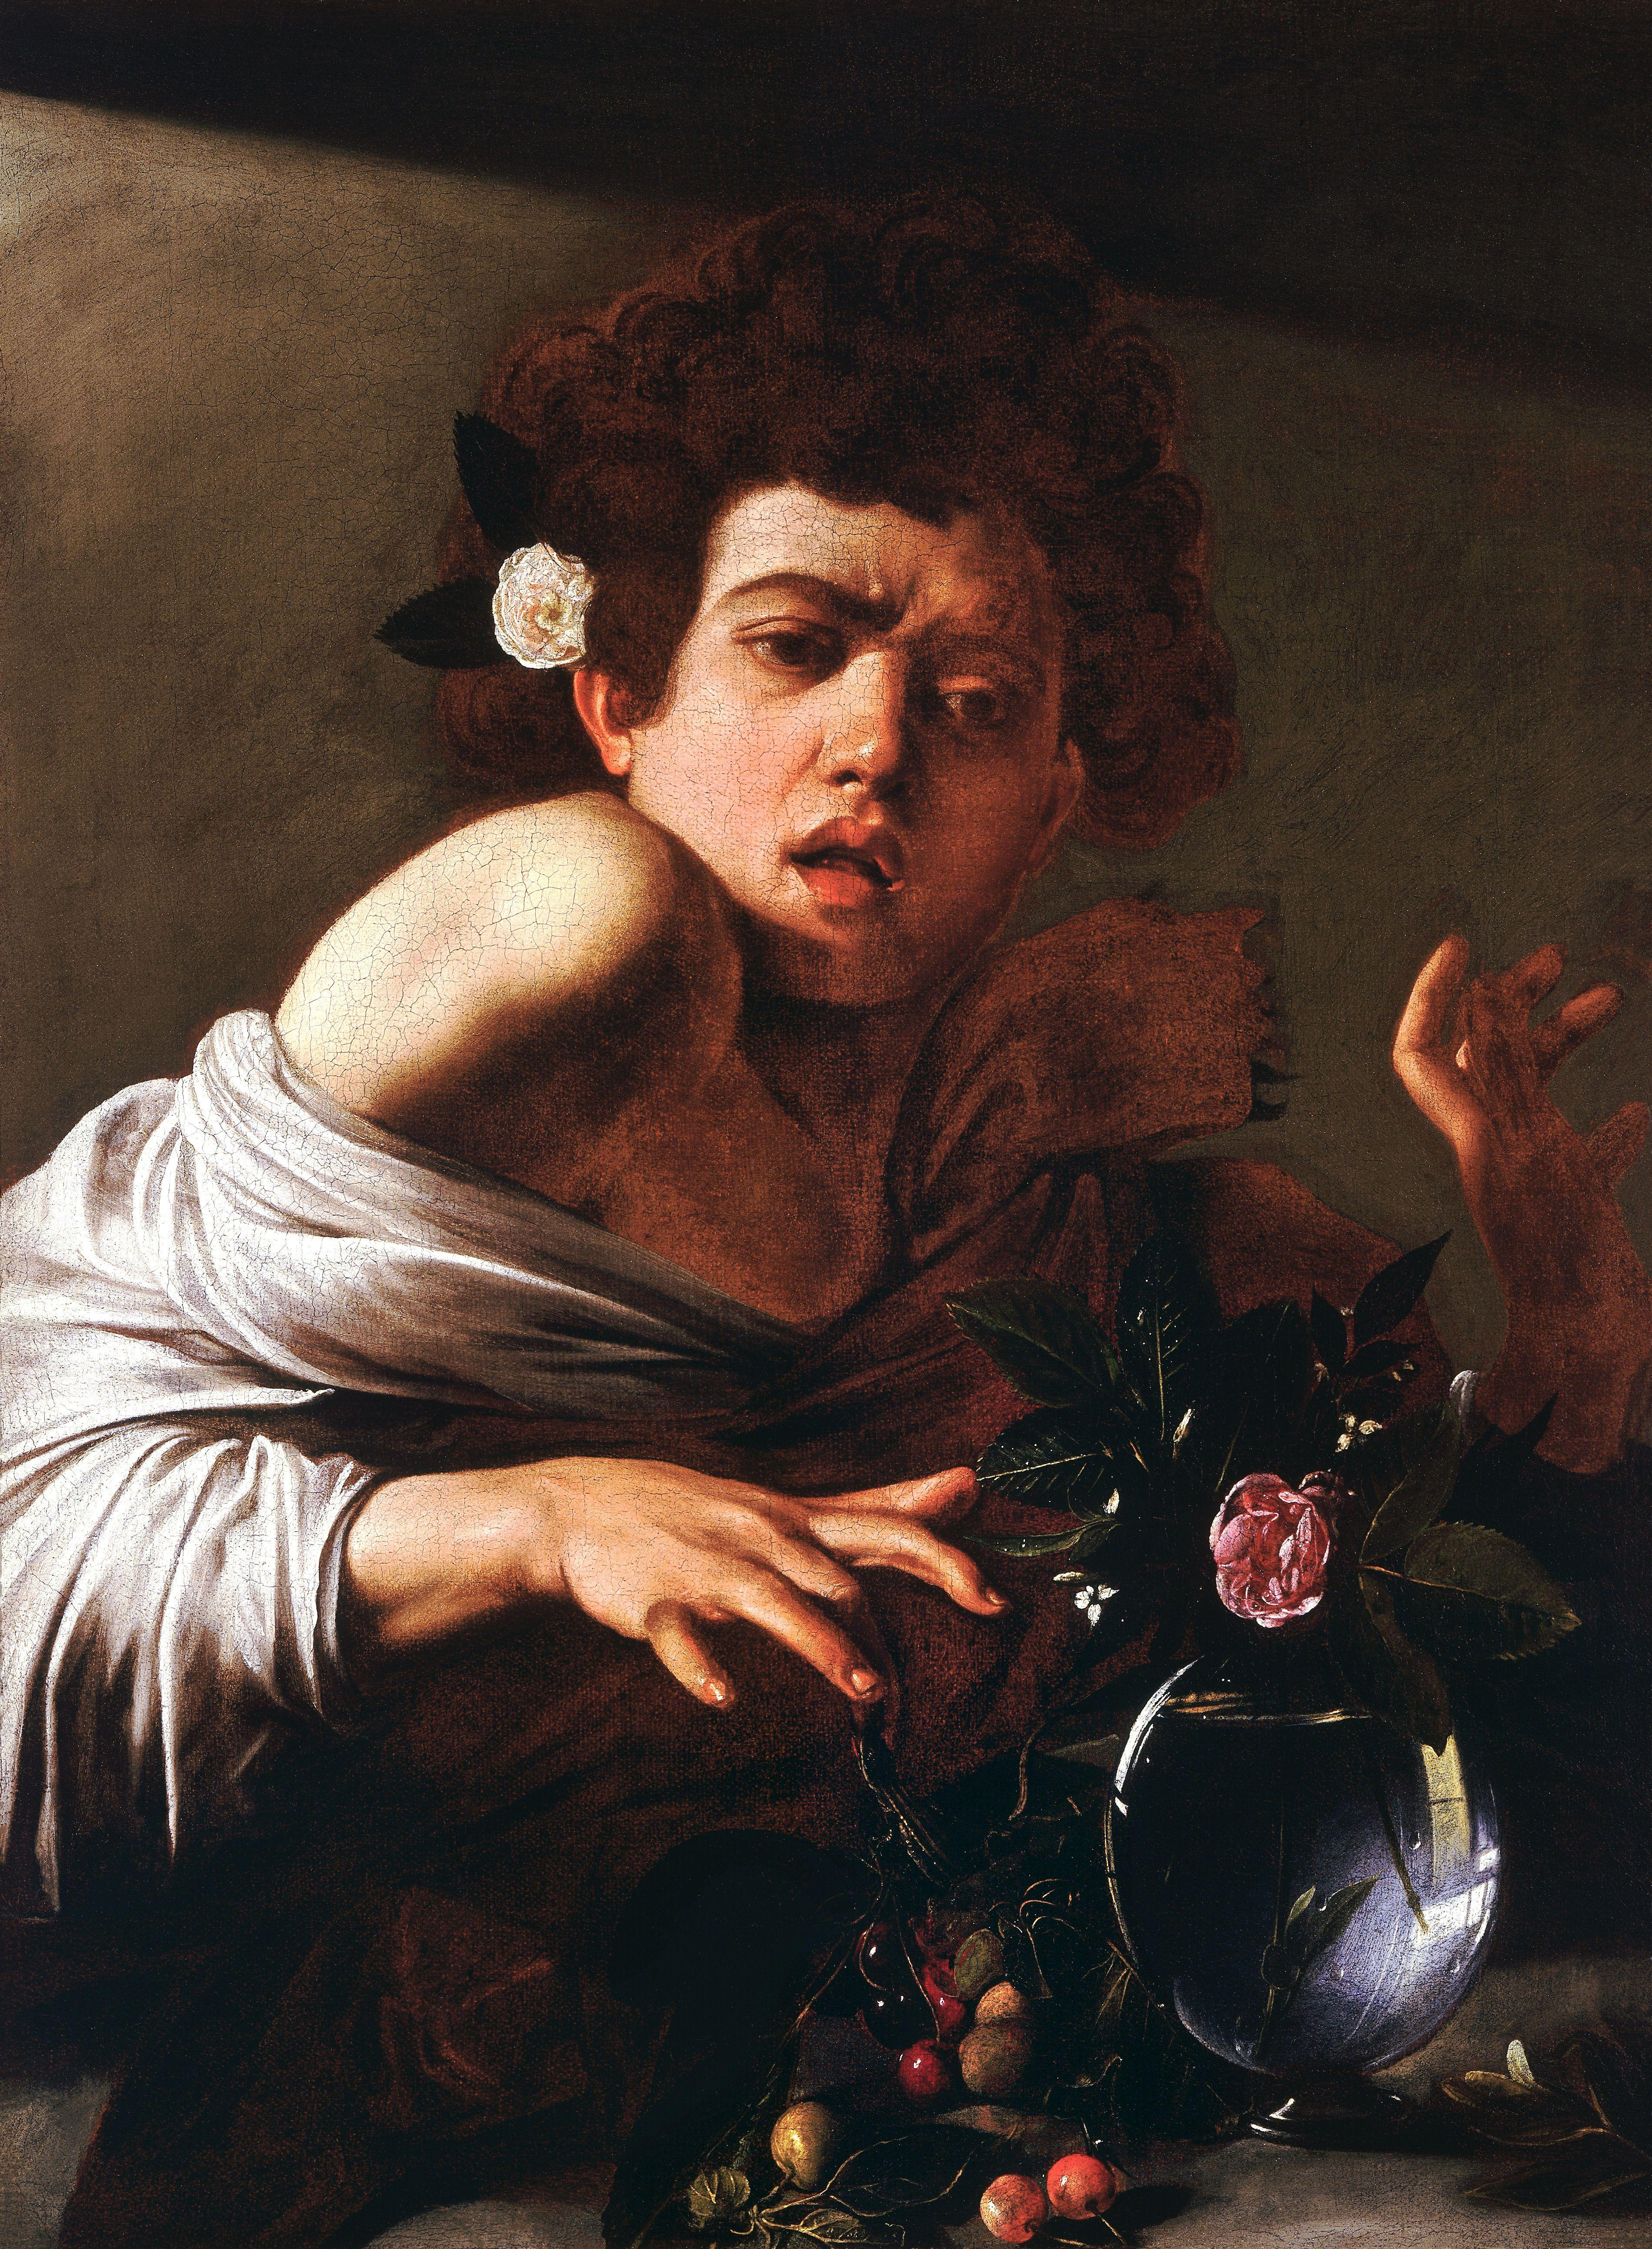 Chris F. Westbury: On Caravaggio As (Like Duchamp) An ...